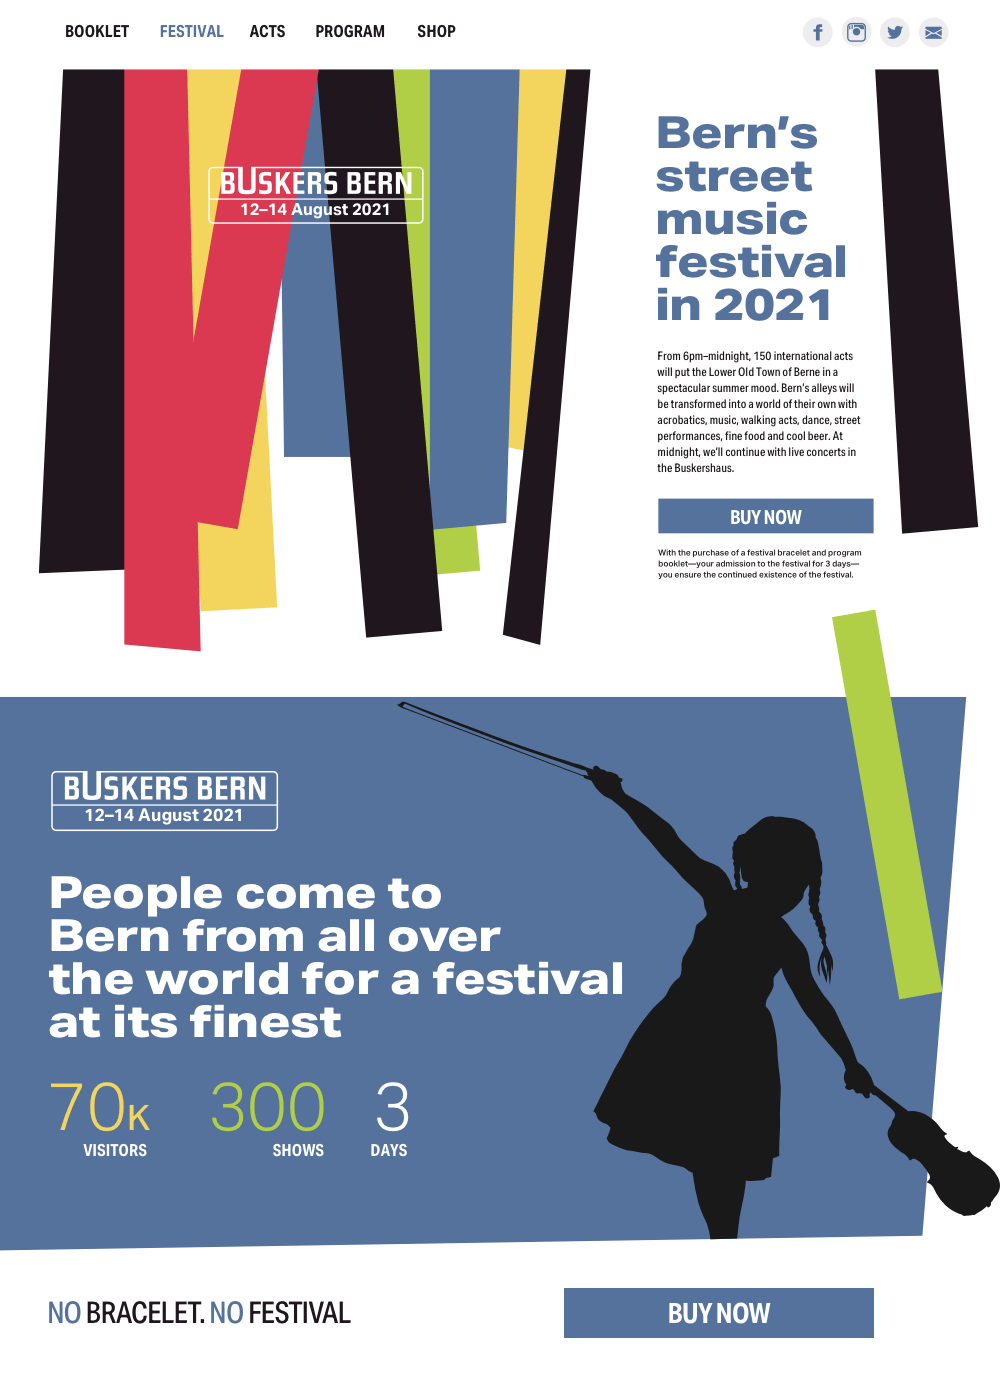 Buskers Bern page design